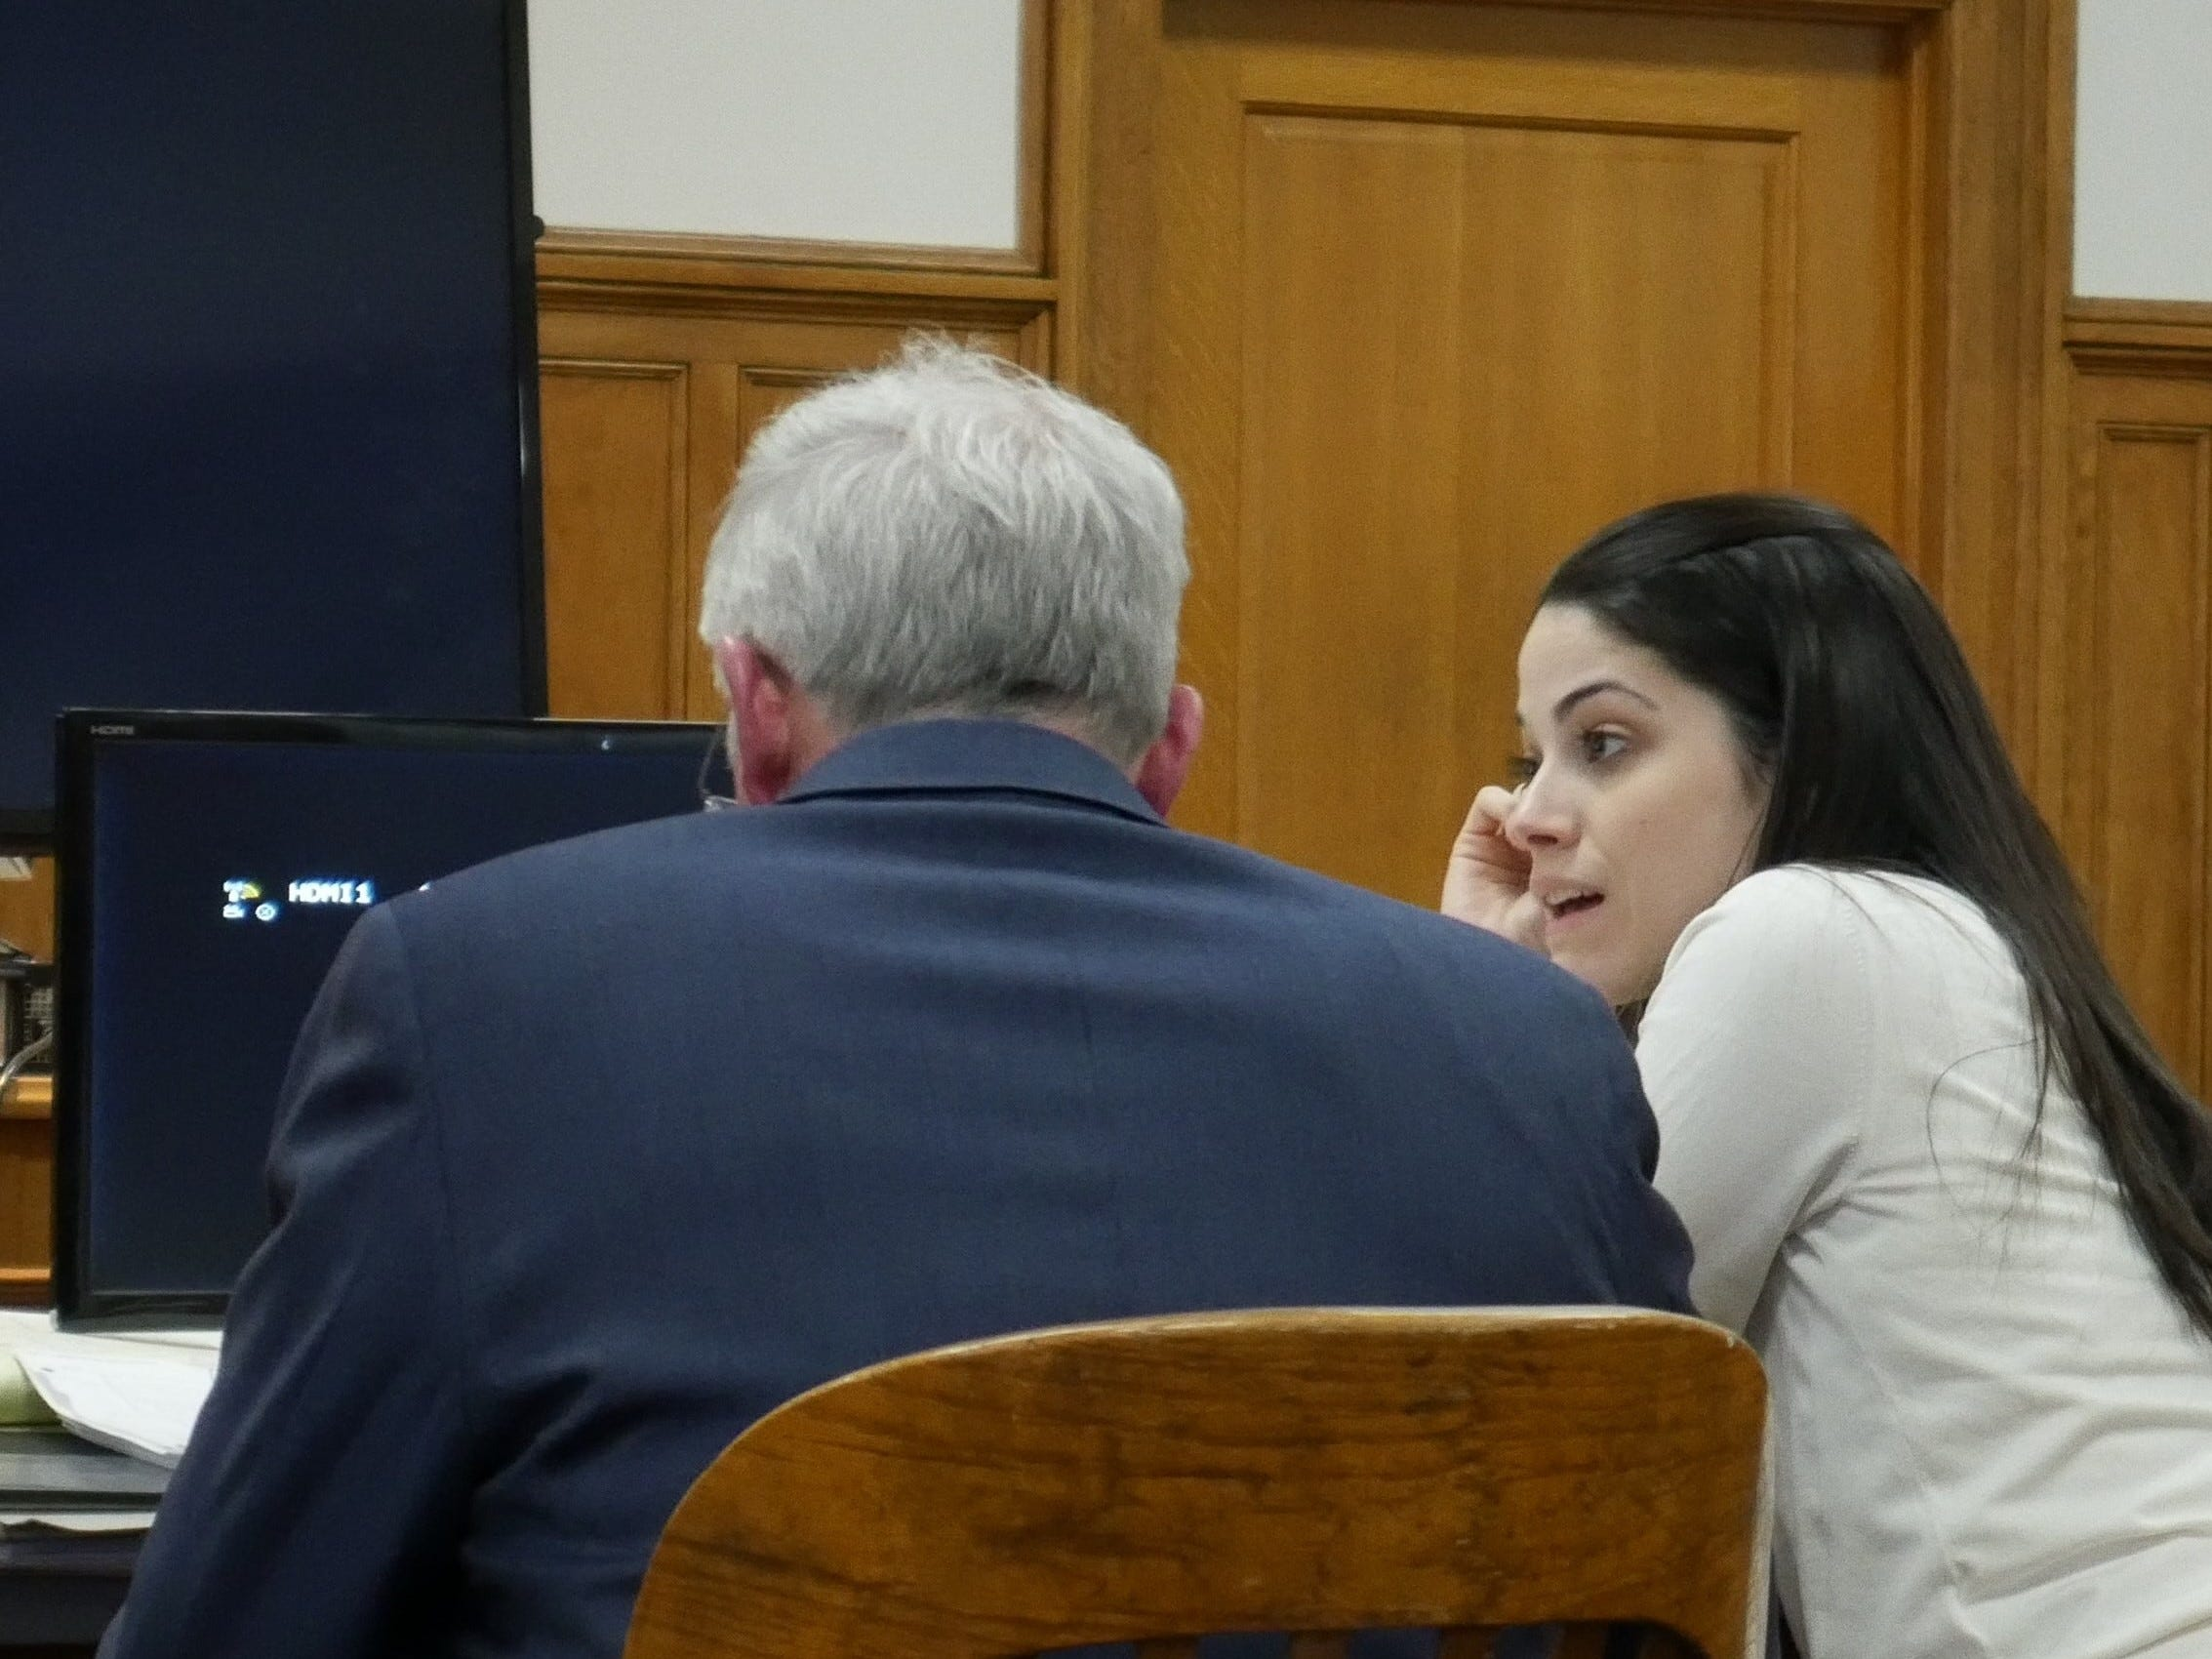 Nicole Addimando (center) speaks to one of her defense attorneys, Benjamin Ostrer, in Dutchess County Court on April 3, 2019.